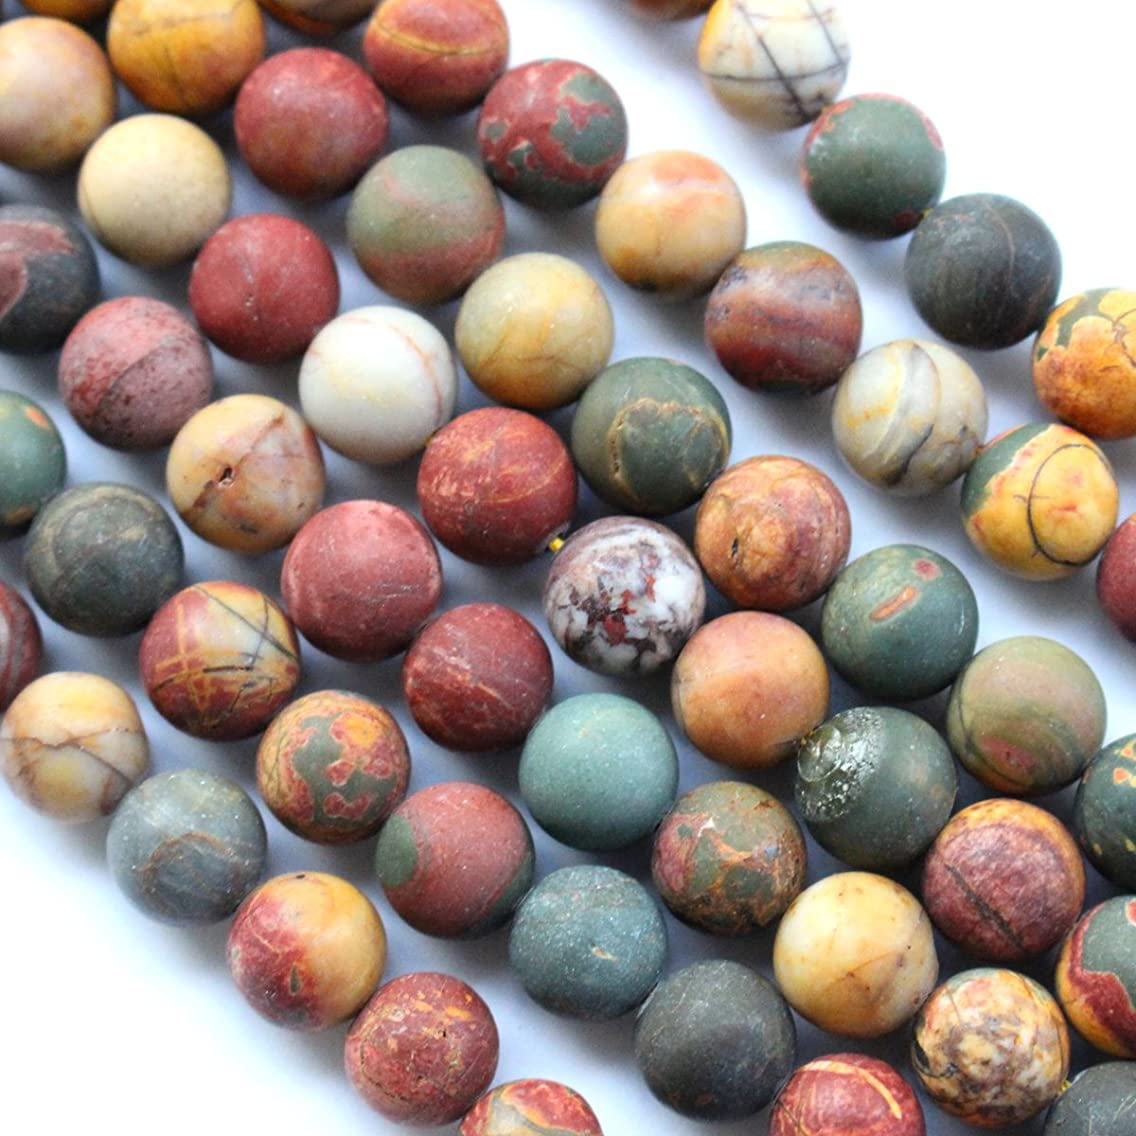 Natural Frosted Unpolished Genuine Picasso Jasper Round Gemstone Jewelry Making Loose Beads (Colorful 8mm)